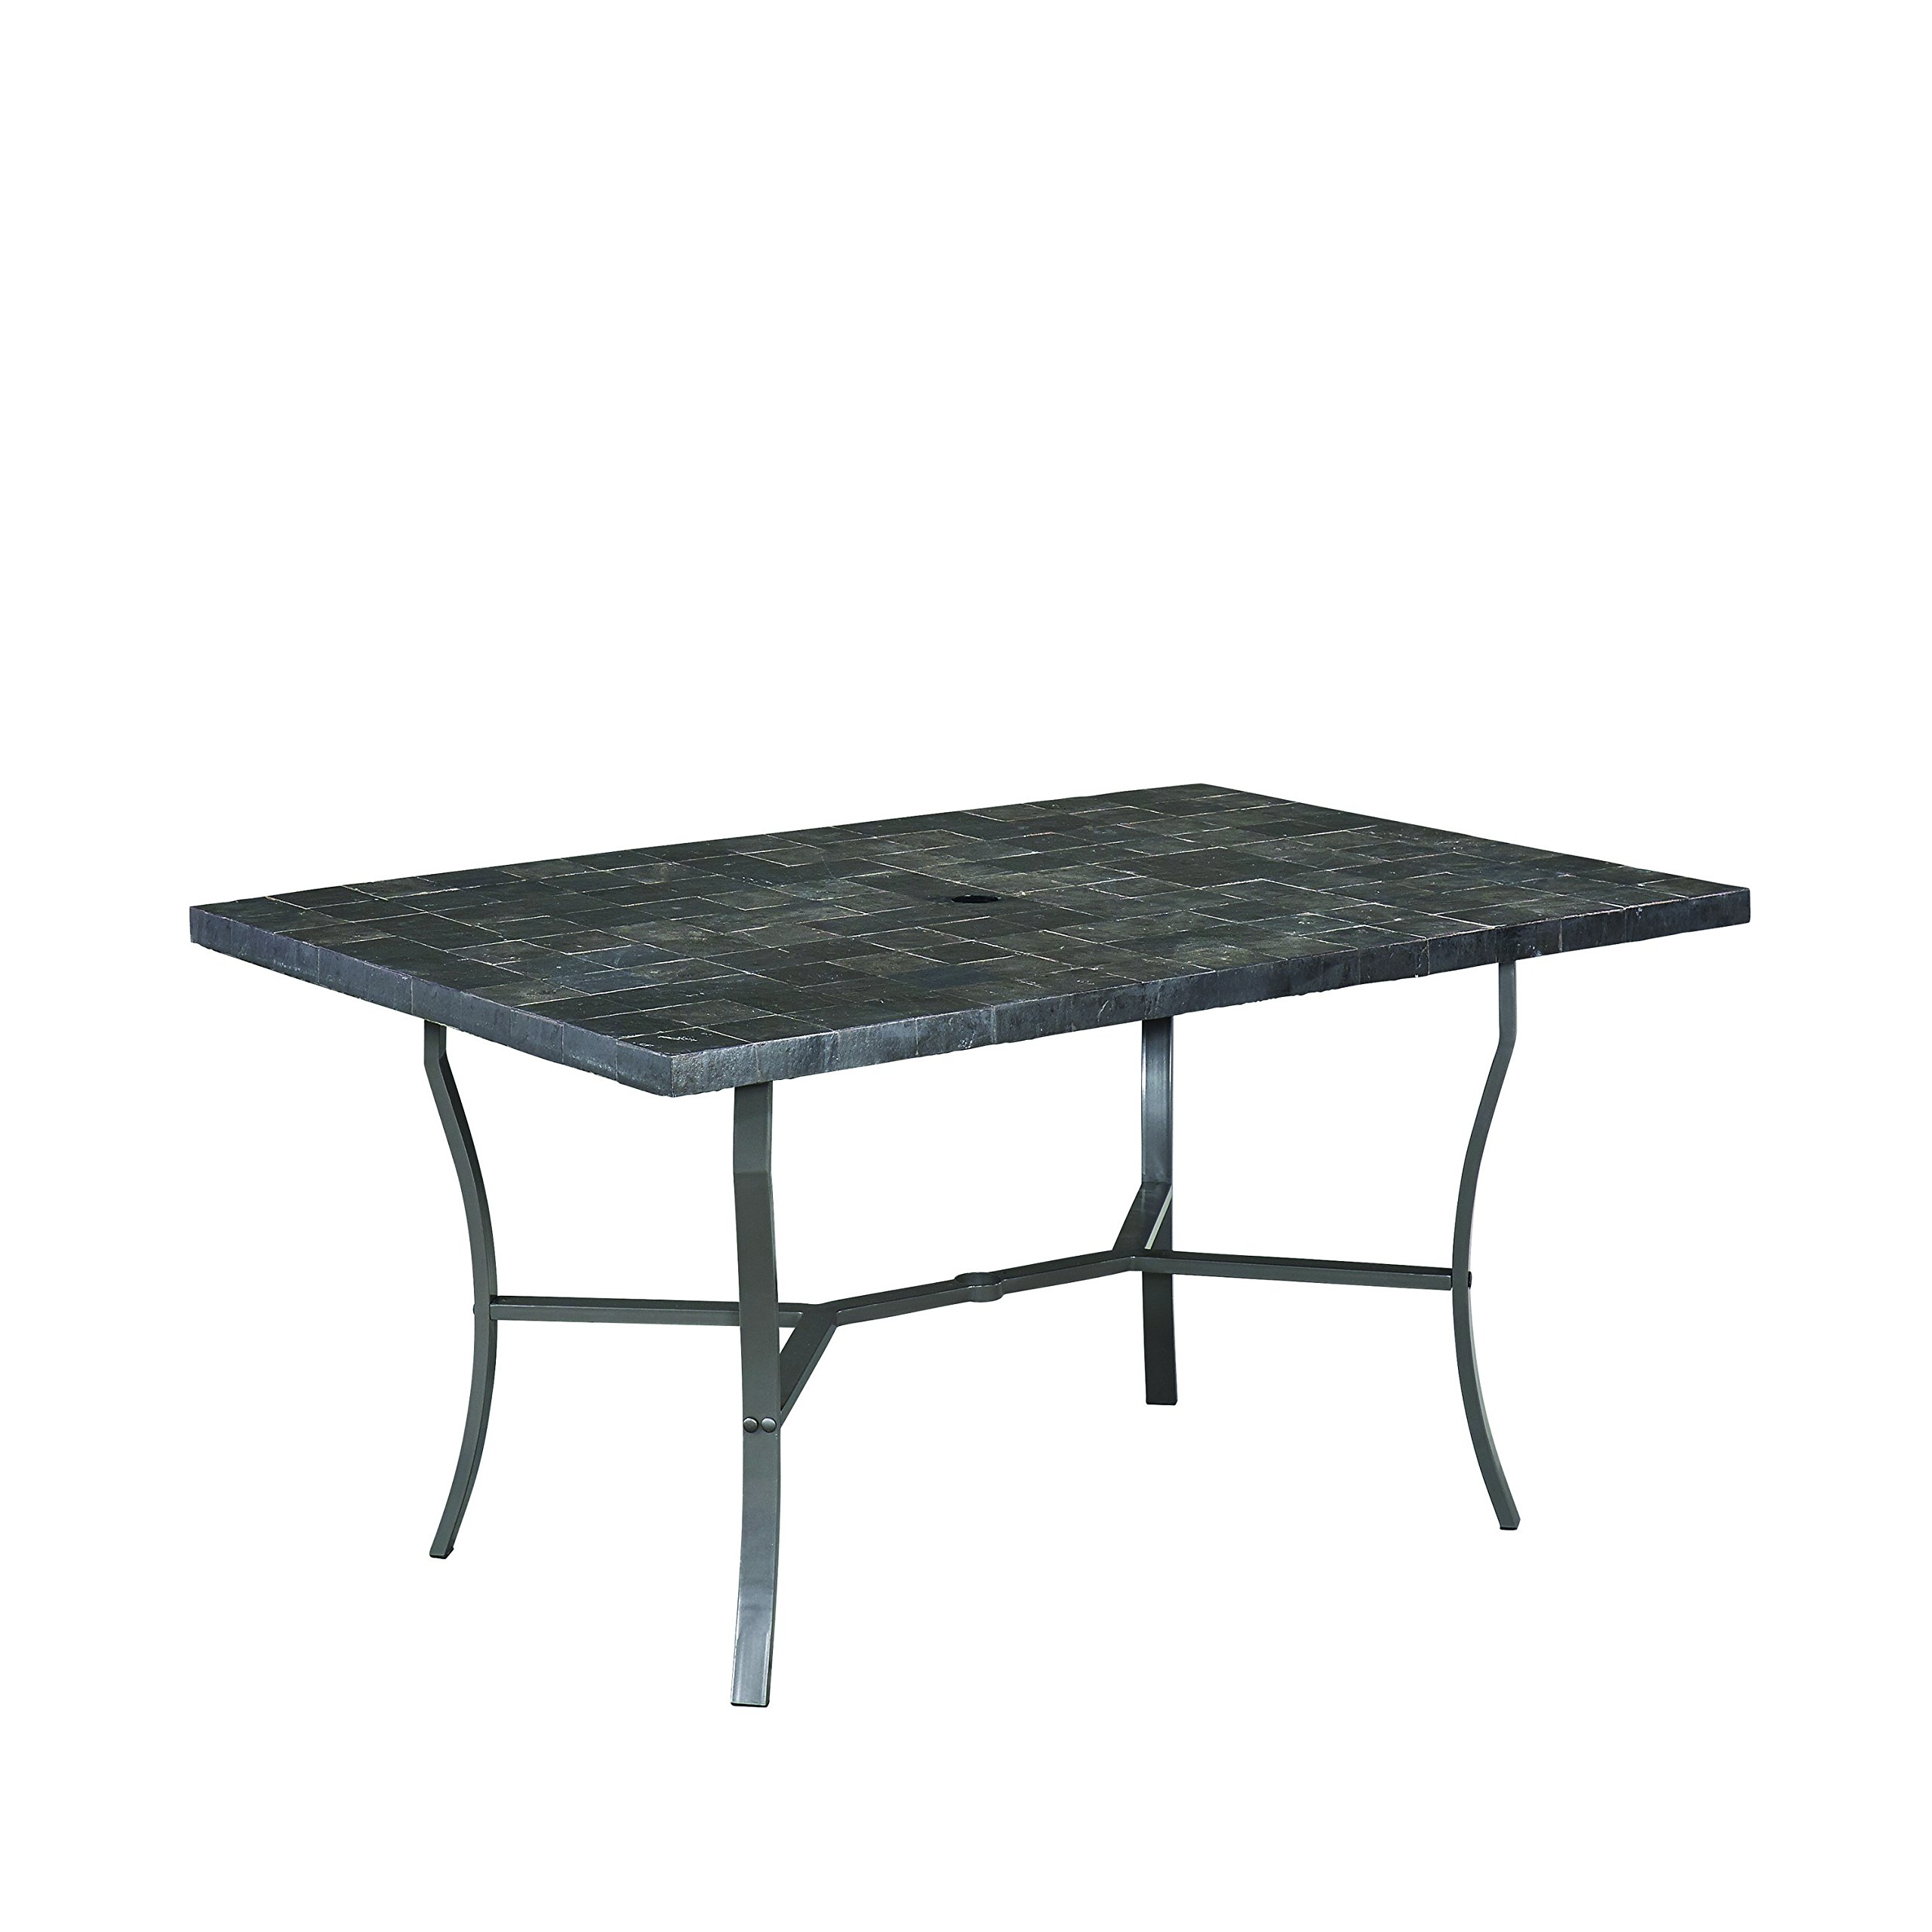 Home Styles 6000-31 Stone Veneer Slate Tile Top Outdoor Dining Table, Gray